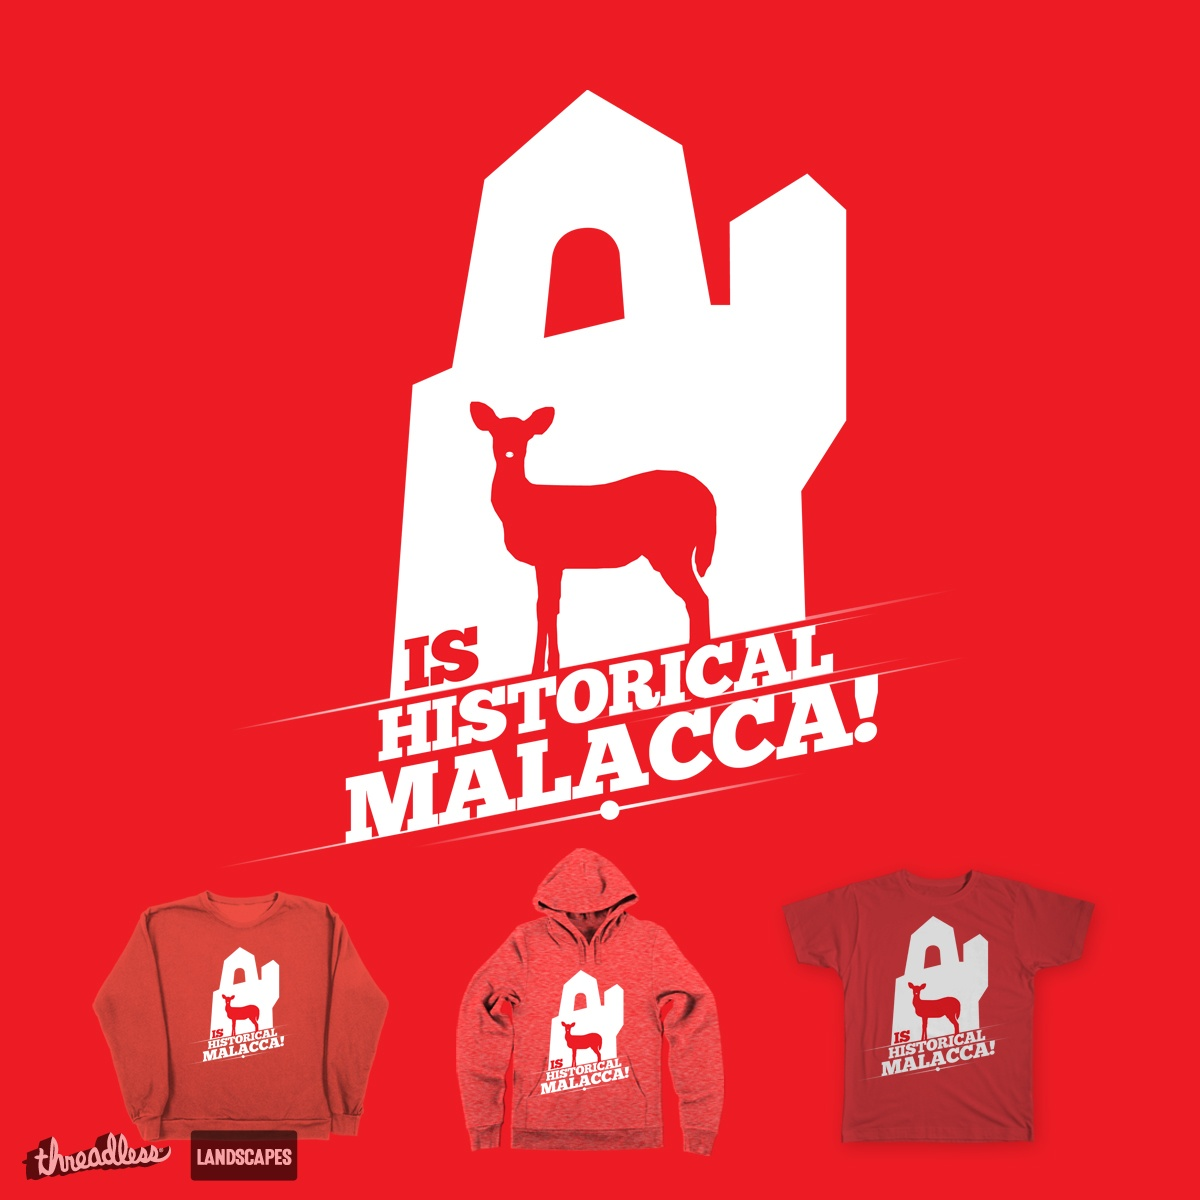 Is Historical Malacca!!, a cool t-shirt design